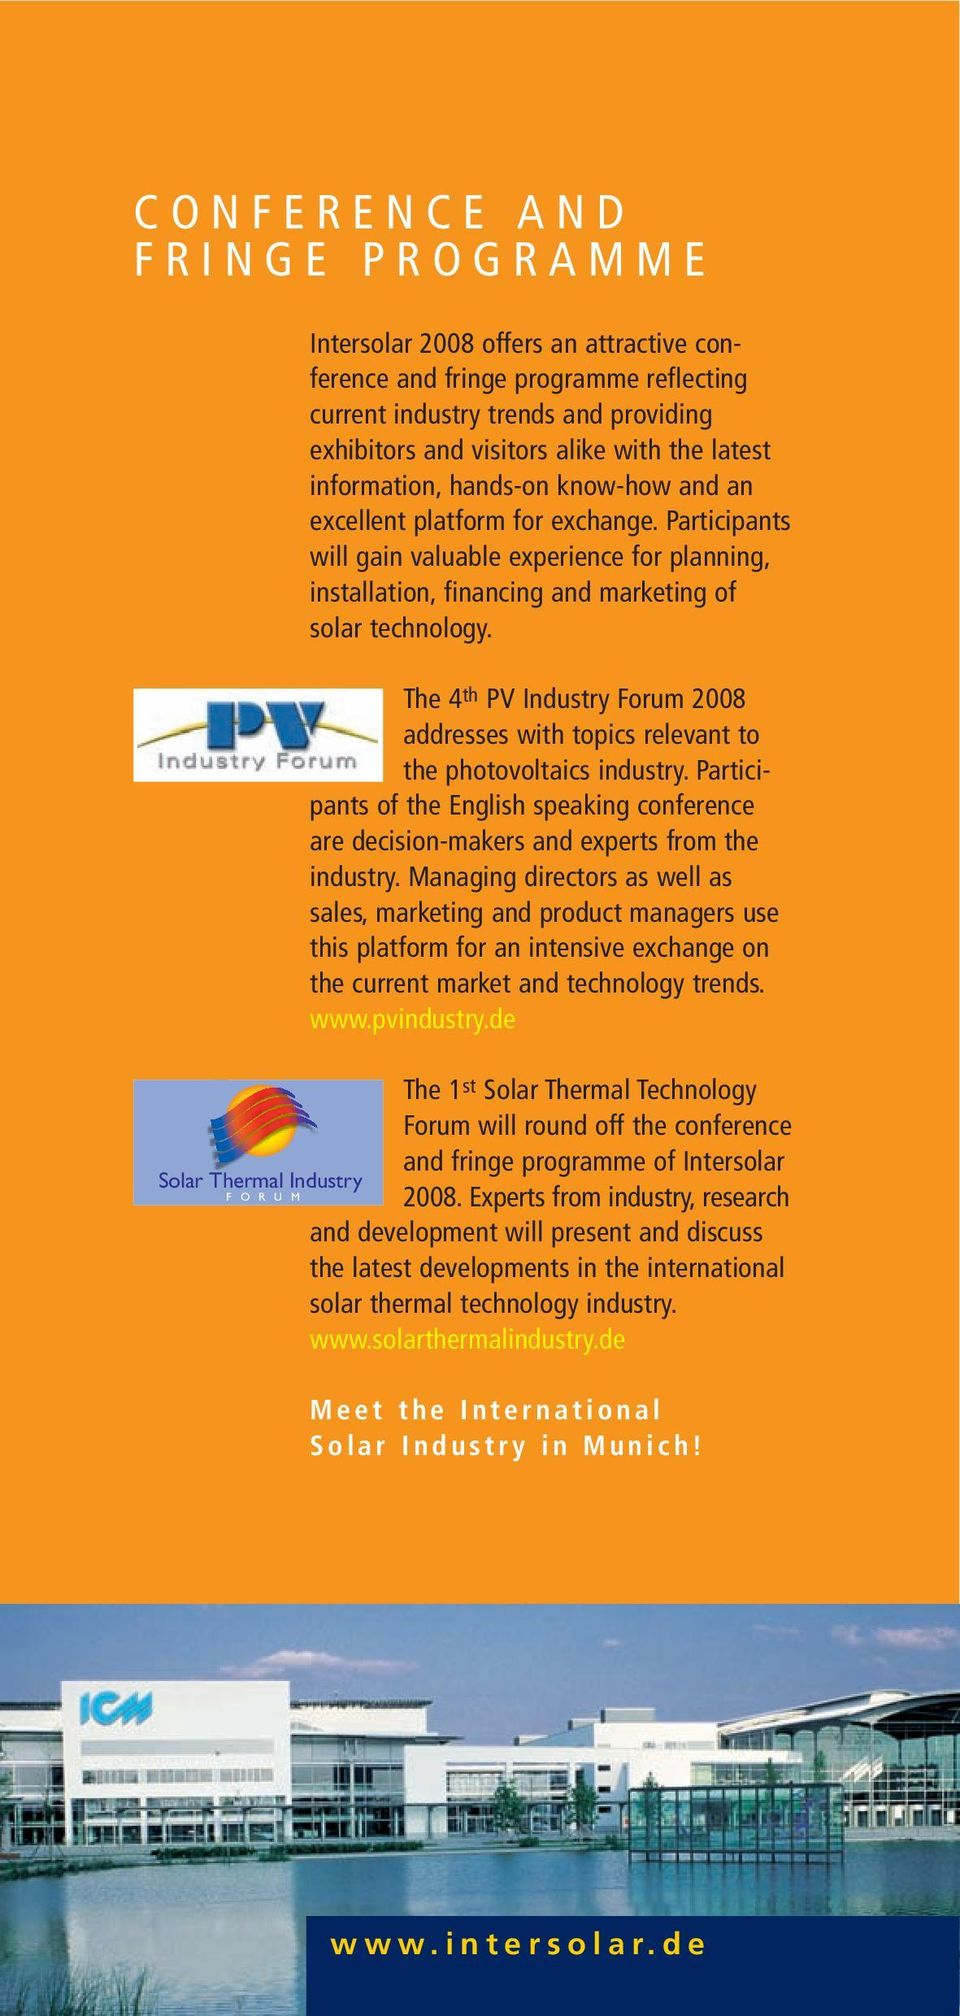 The 4 th PV Industry Forum 2008 addresses with topics relevant to the photovoltaics industry. Participants of the English speaking conference are decision-makers and experts from the industry.